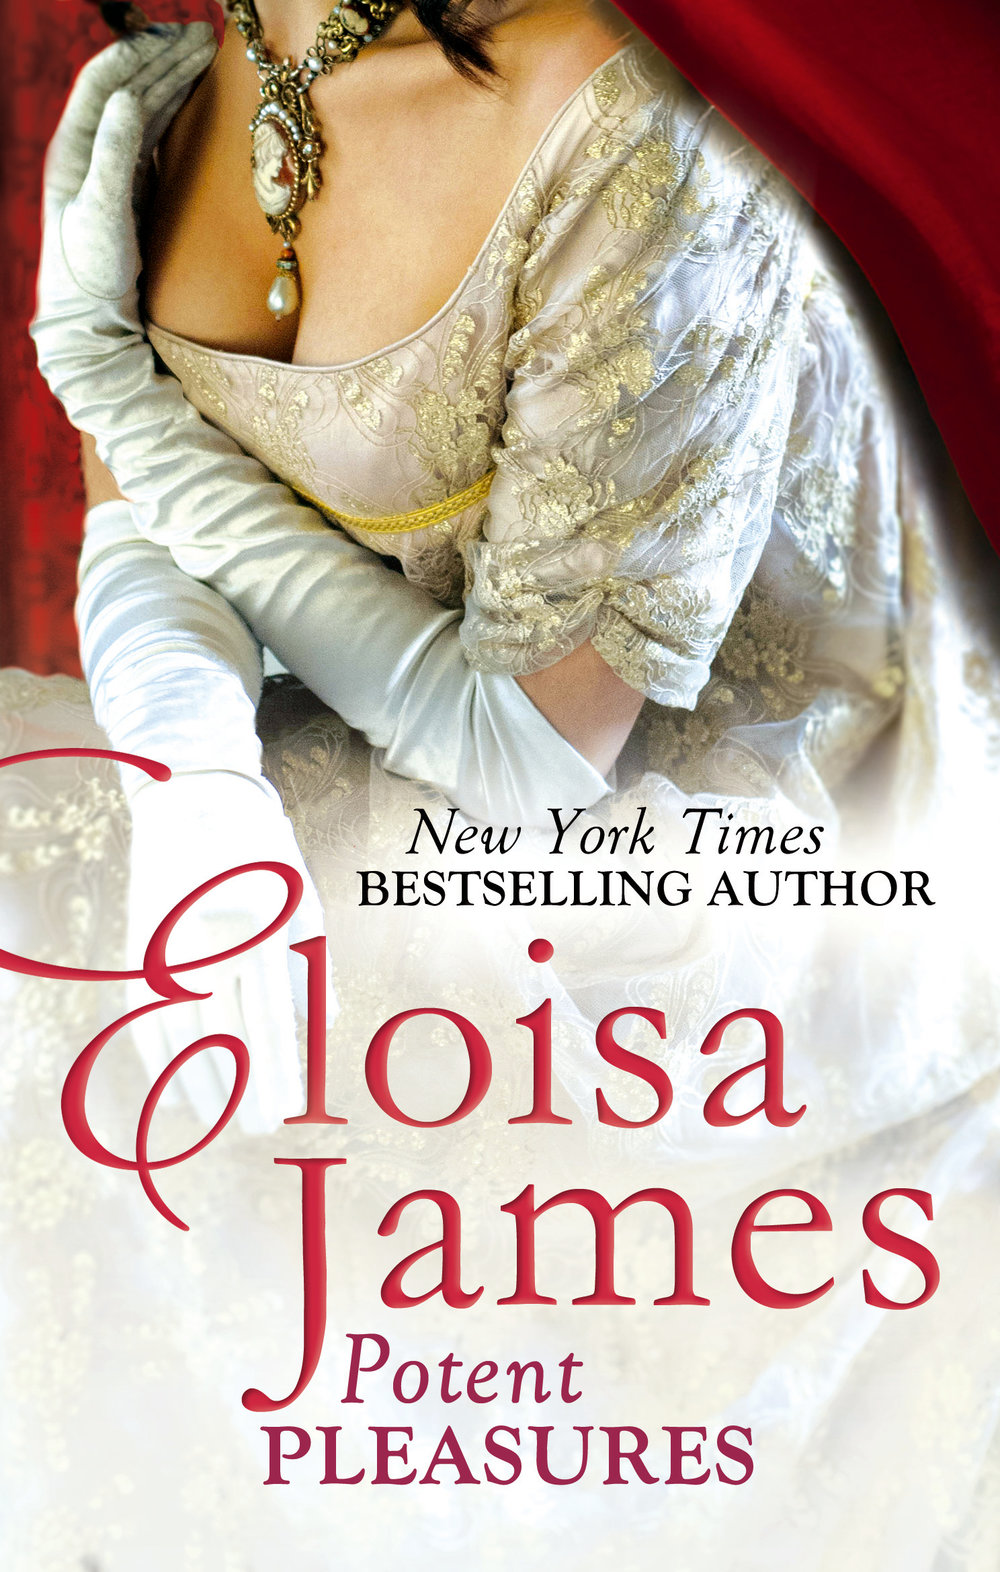 potent pleasures by eloisa james.jpg